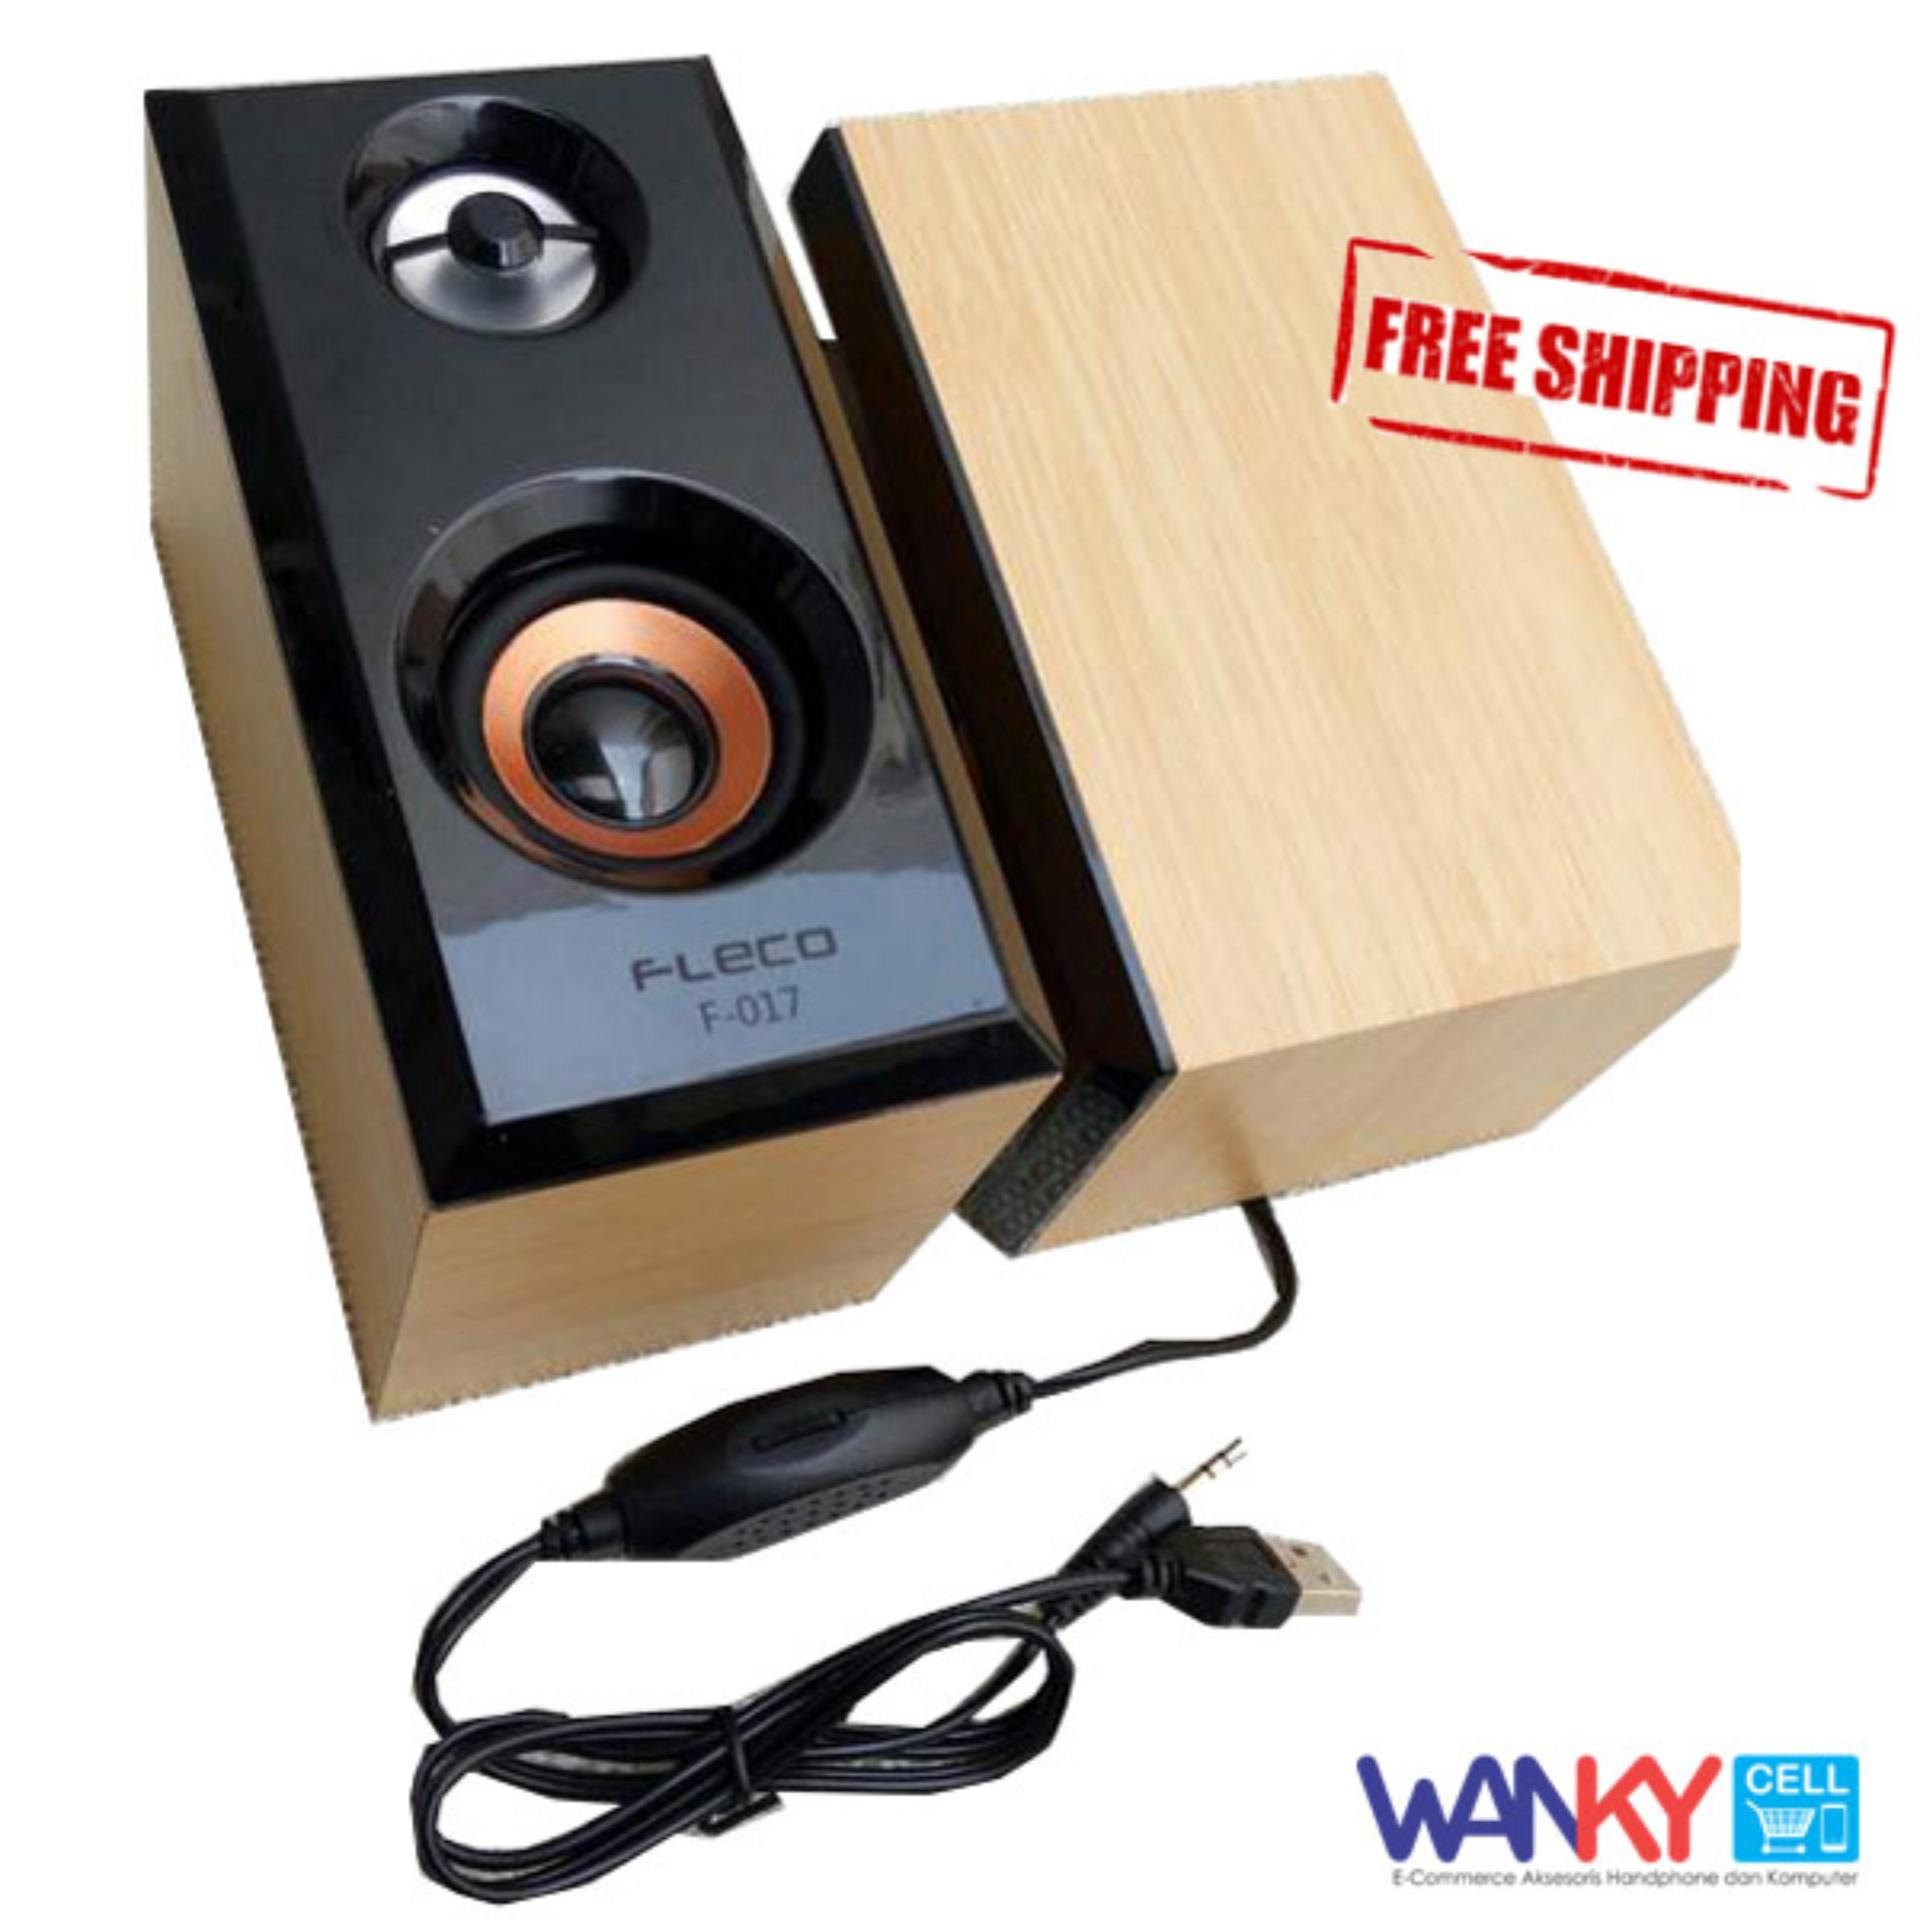 Harga Fleco F 017 Wooden Speaker Pc Mini Usb 2 Cream Dan Spesifikasinya